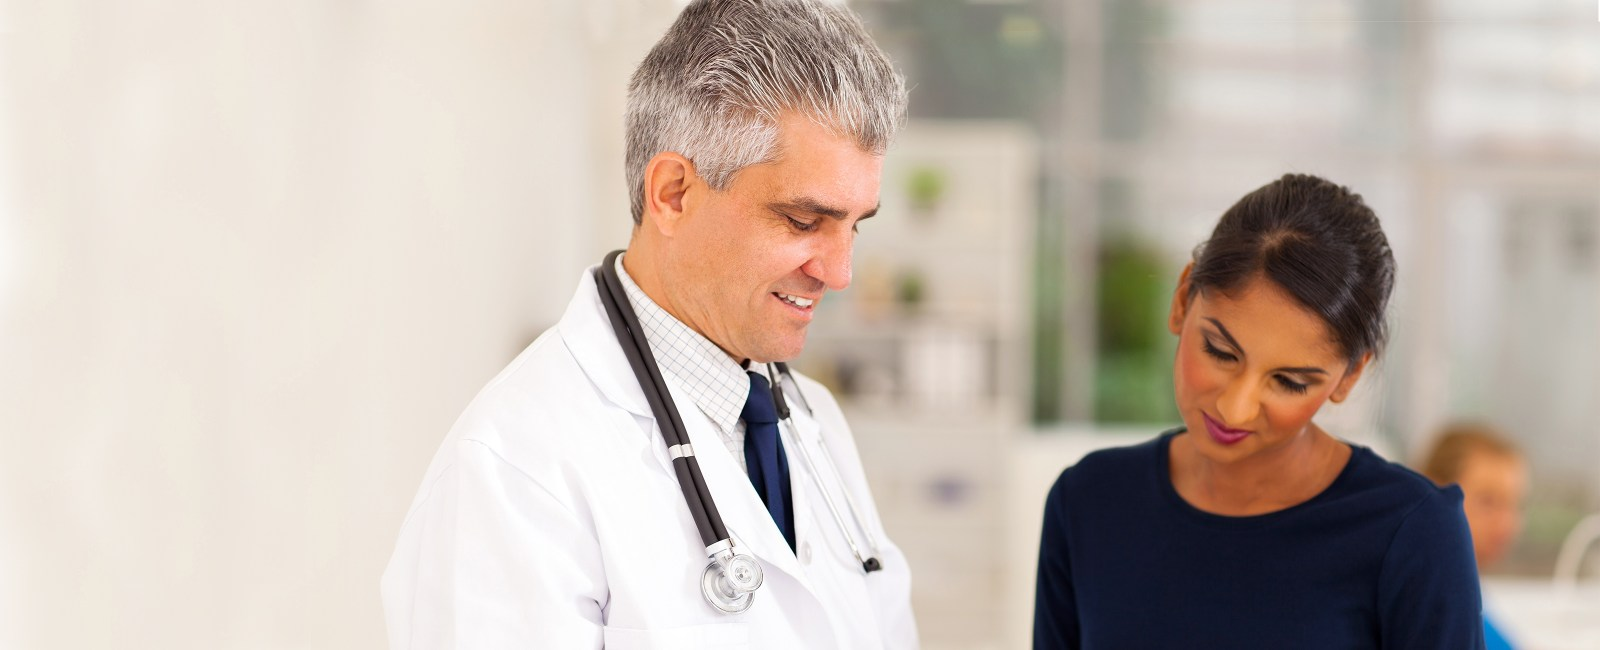 patient speaking with doctor